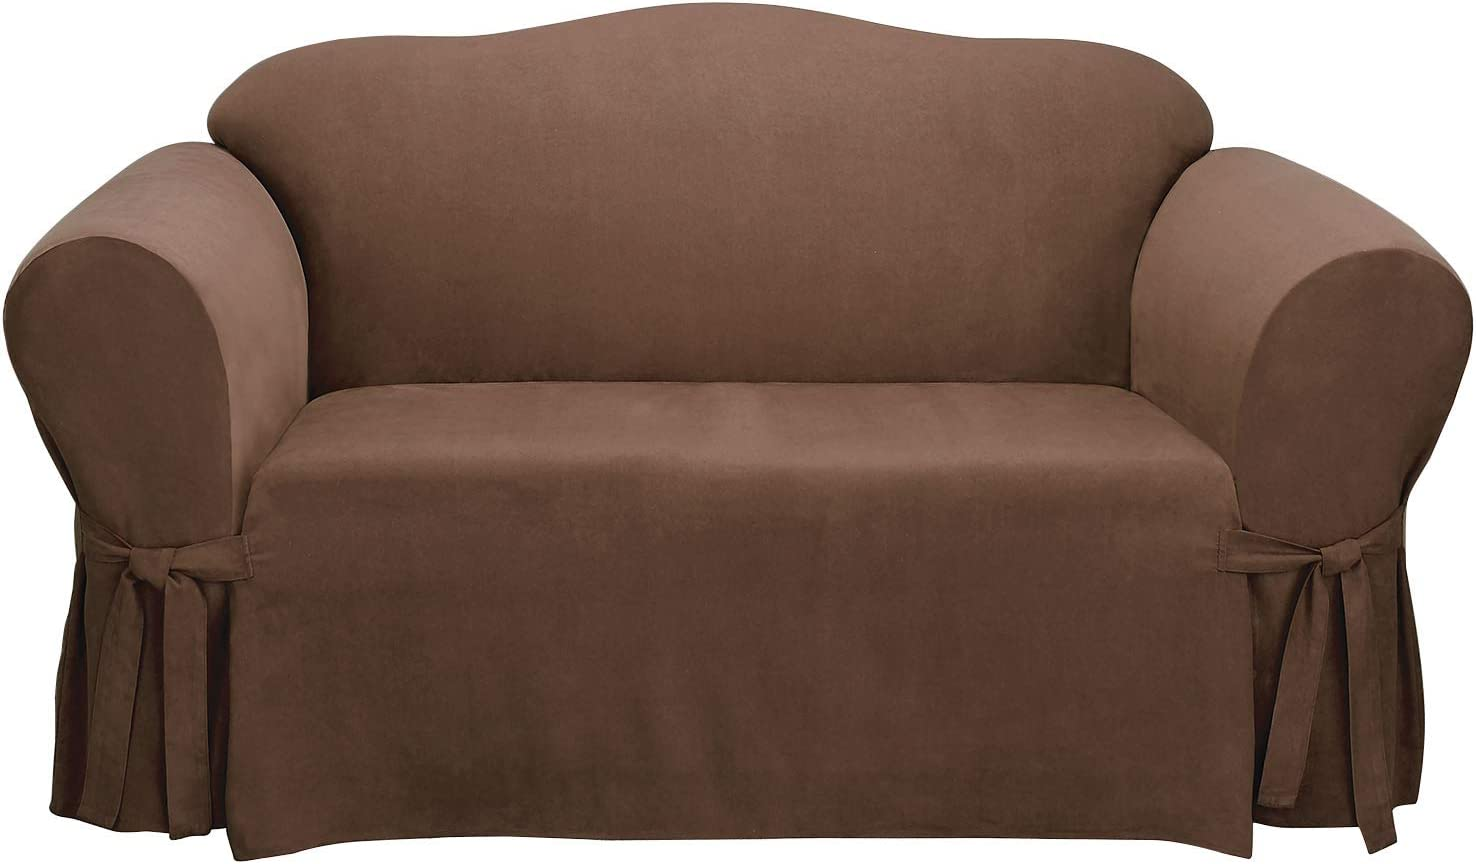 SureFit Home Decor Soft Suede Box Cushion Loveseat One Piece Slipcover, Relaxed Fit, Polyester, Machine Washable, Chocolate Color